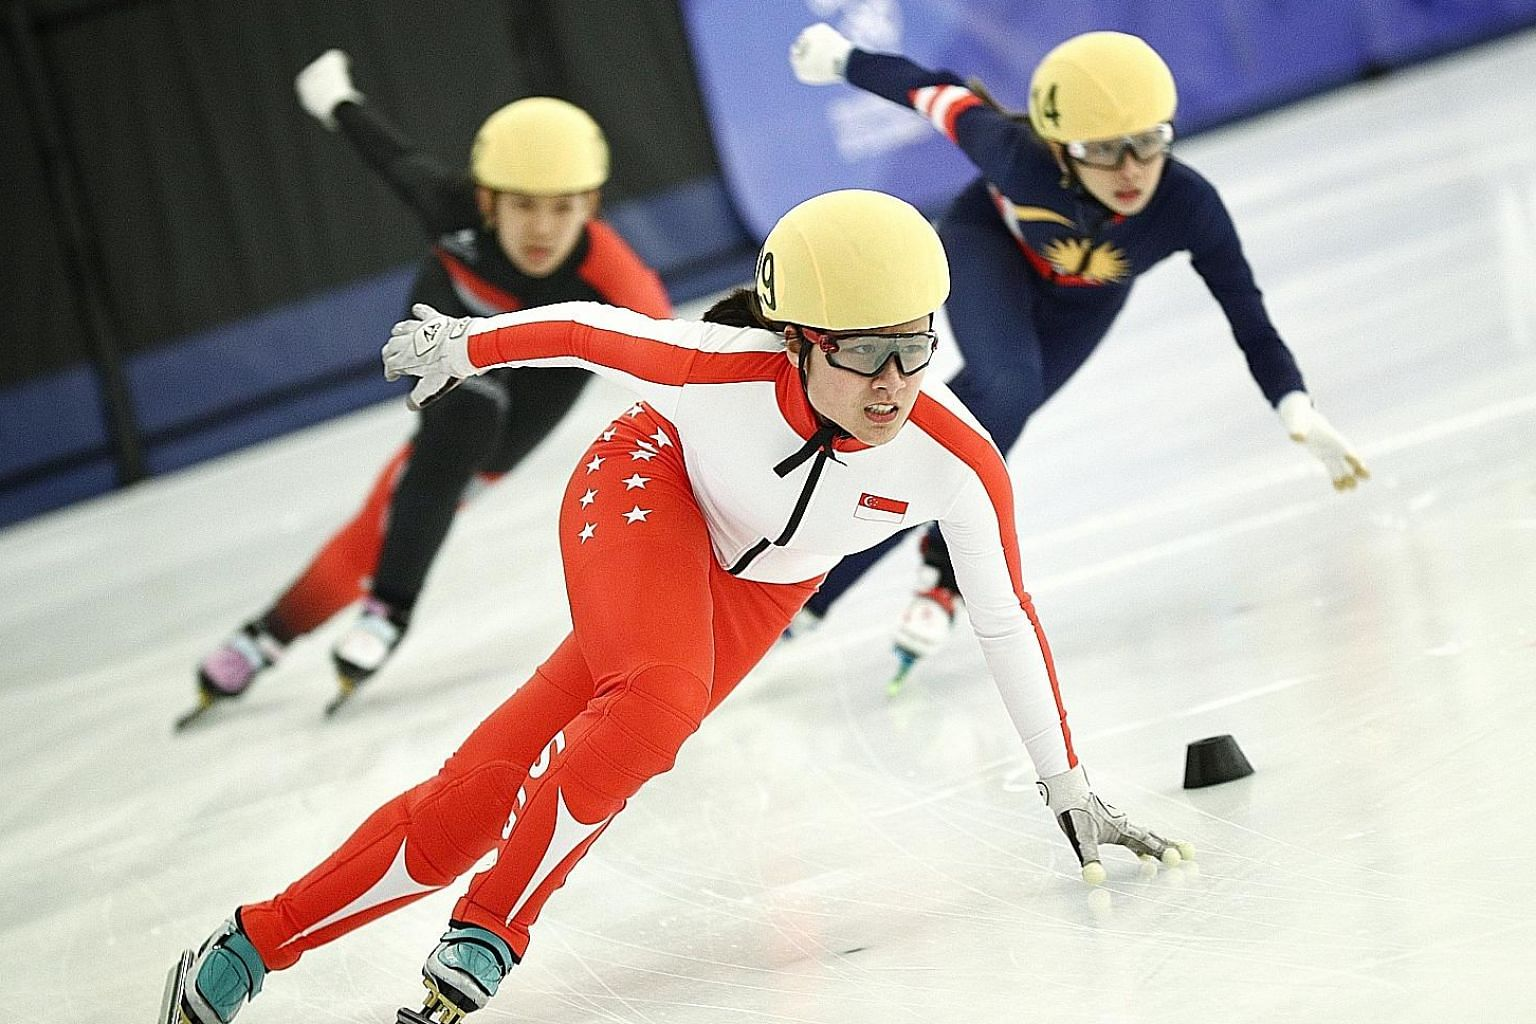 Cheyenne Goh leading from start to finish to win the short-track speed skating 500m by over a second. PHOTO: LIANHE ZAOBAO